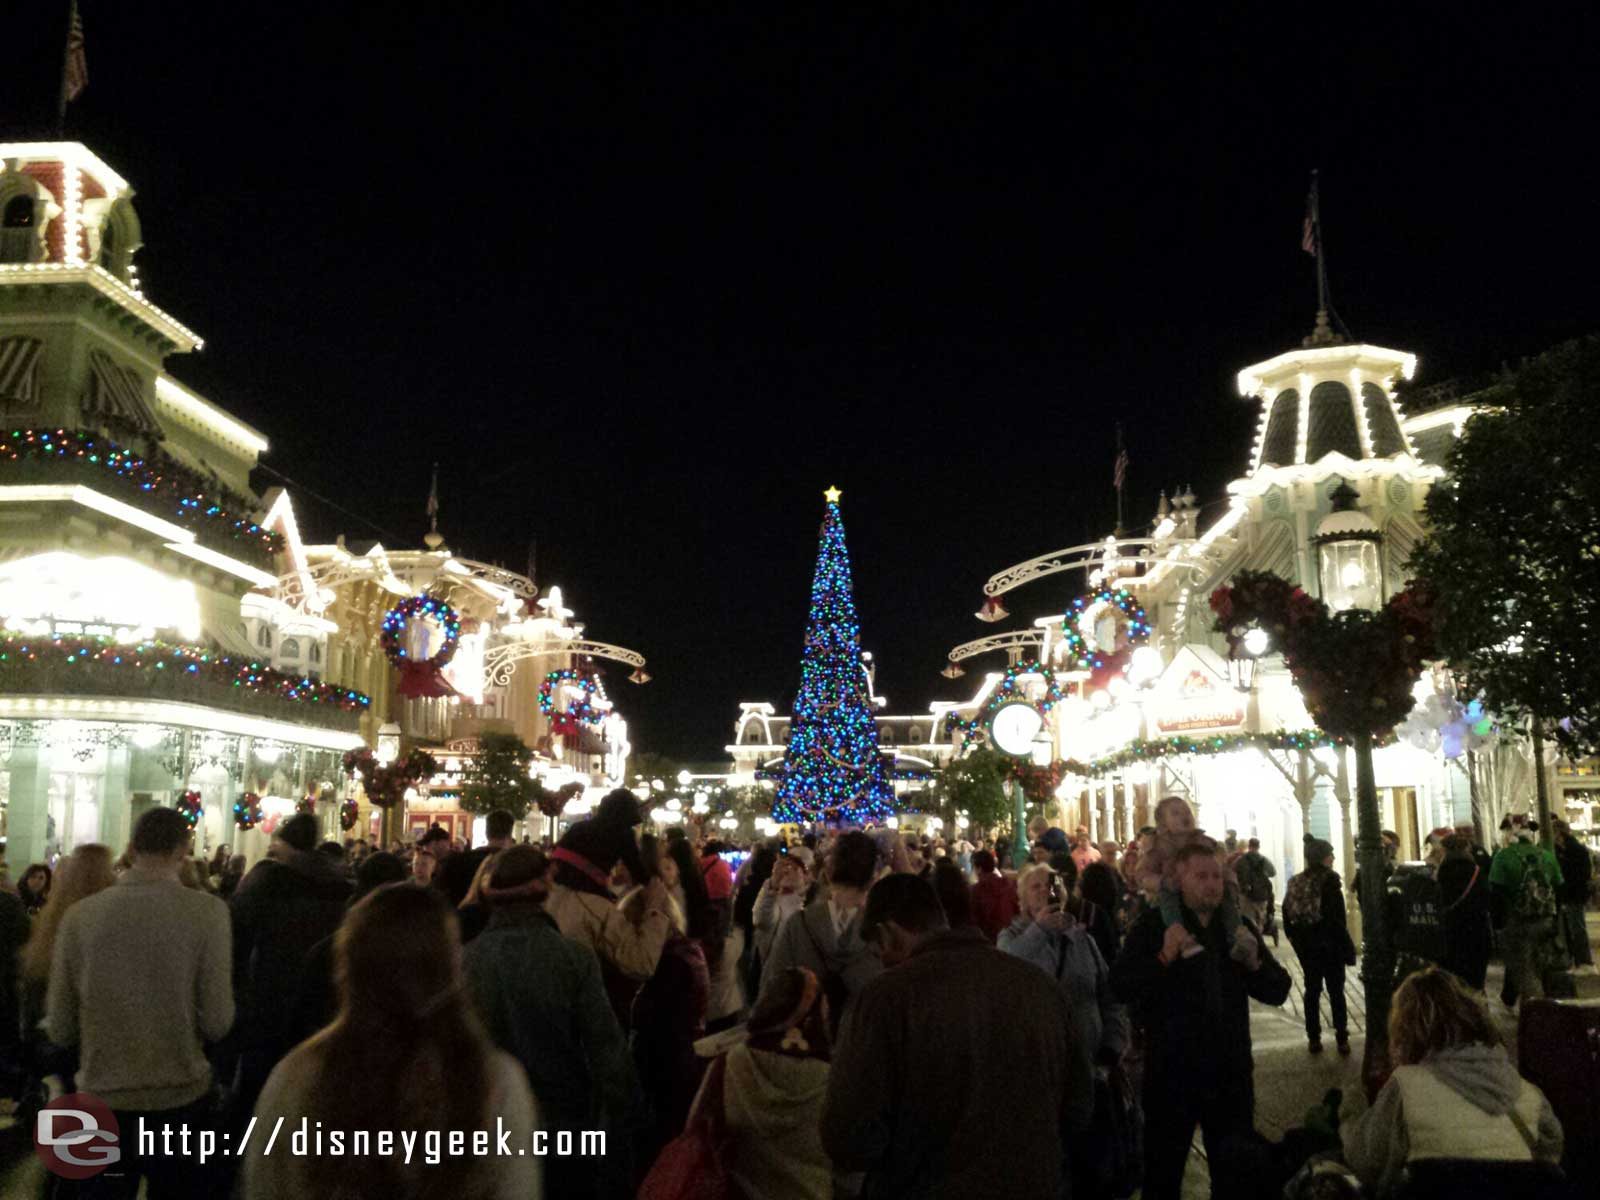 Main Street USA crowded with party guests arriving and day guests leaving #WDW